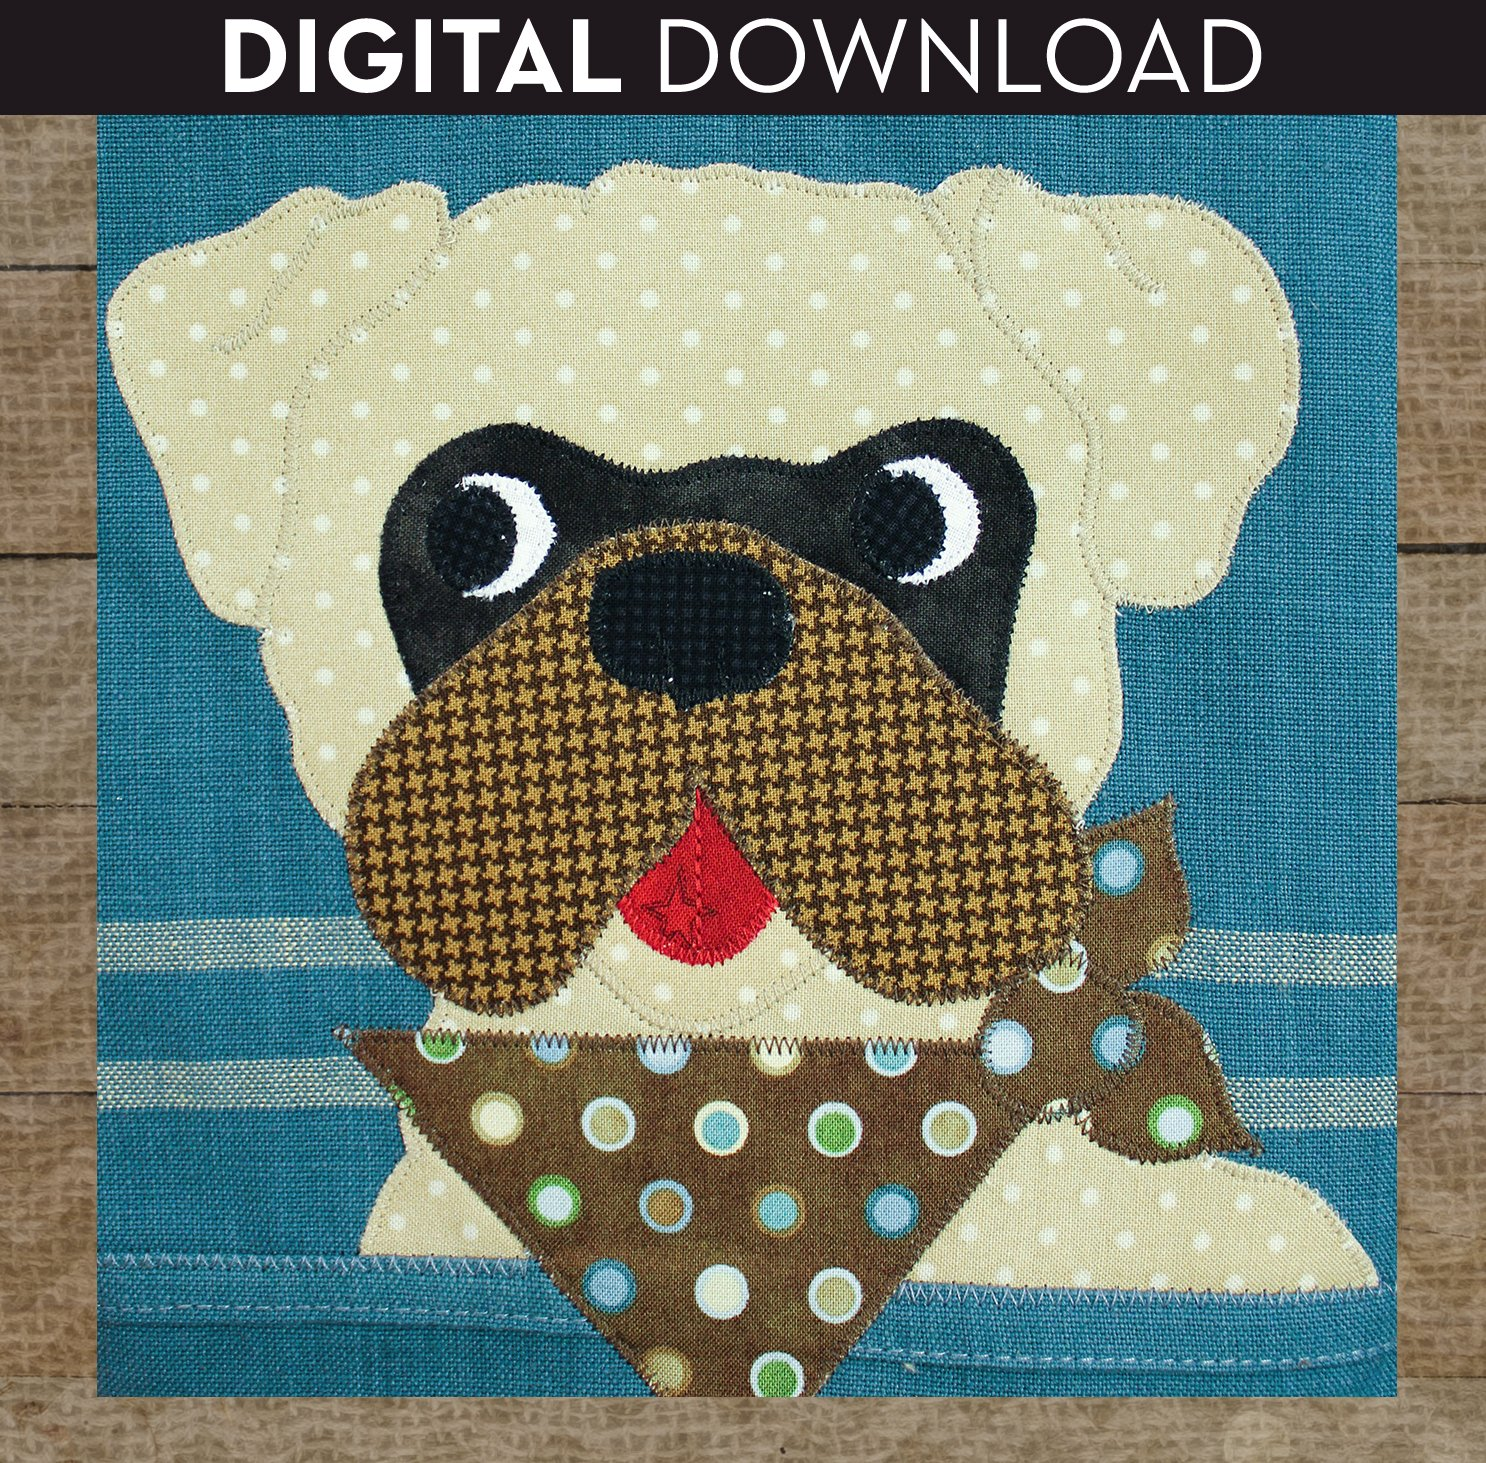 Pug - Download